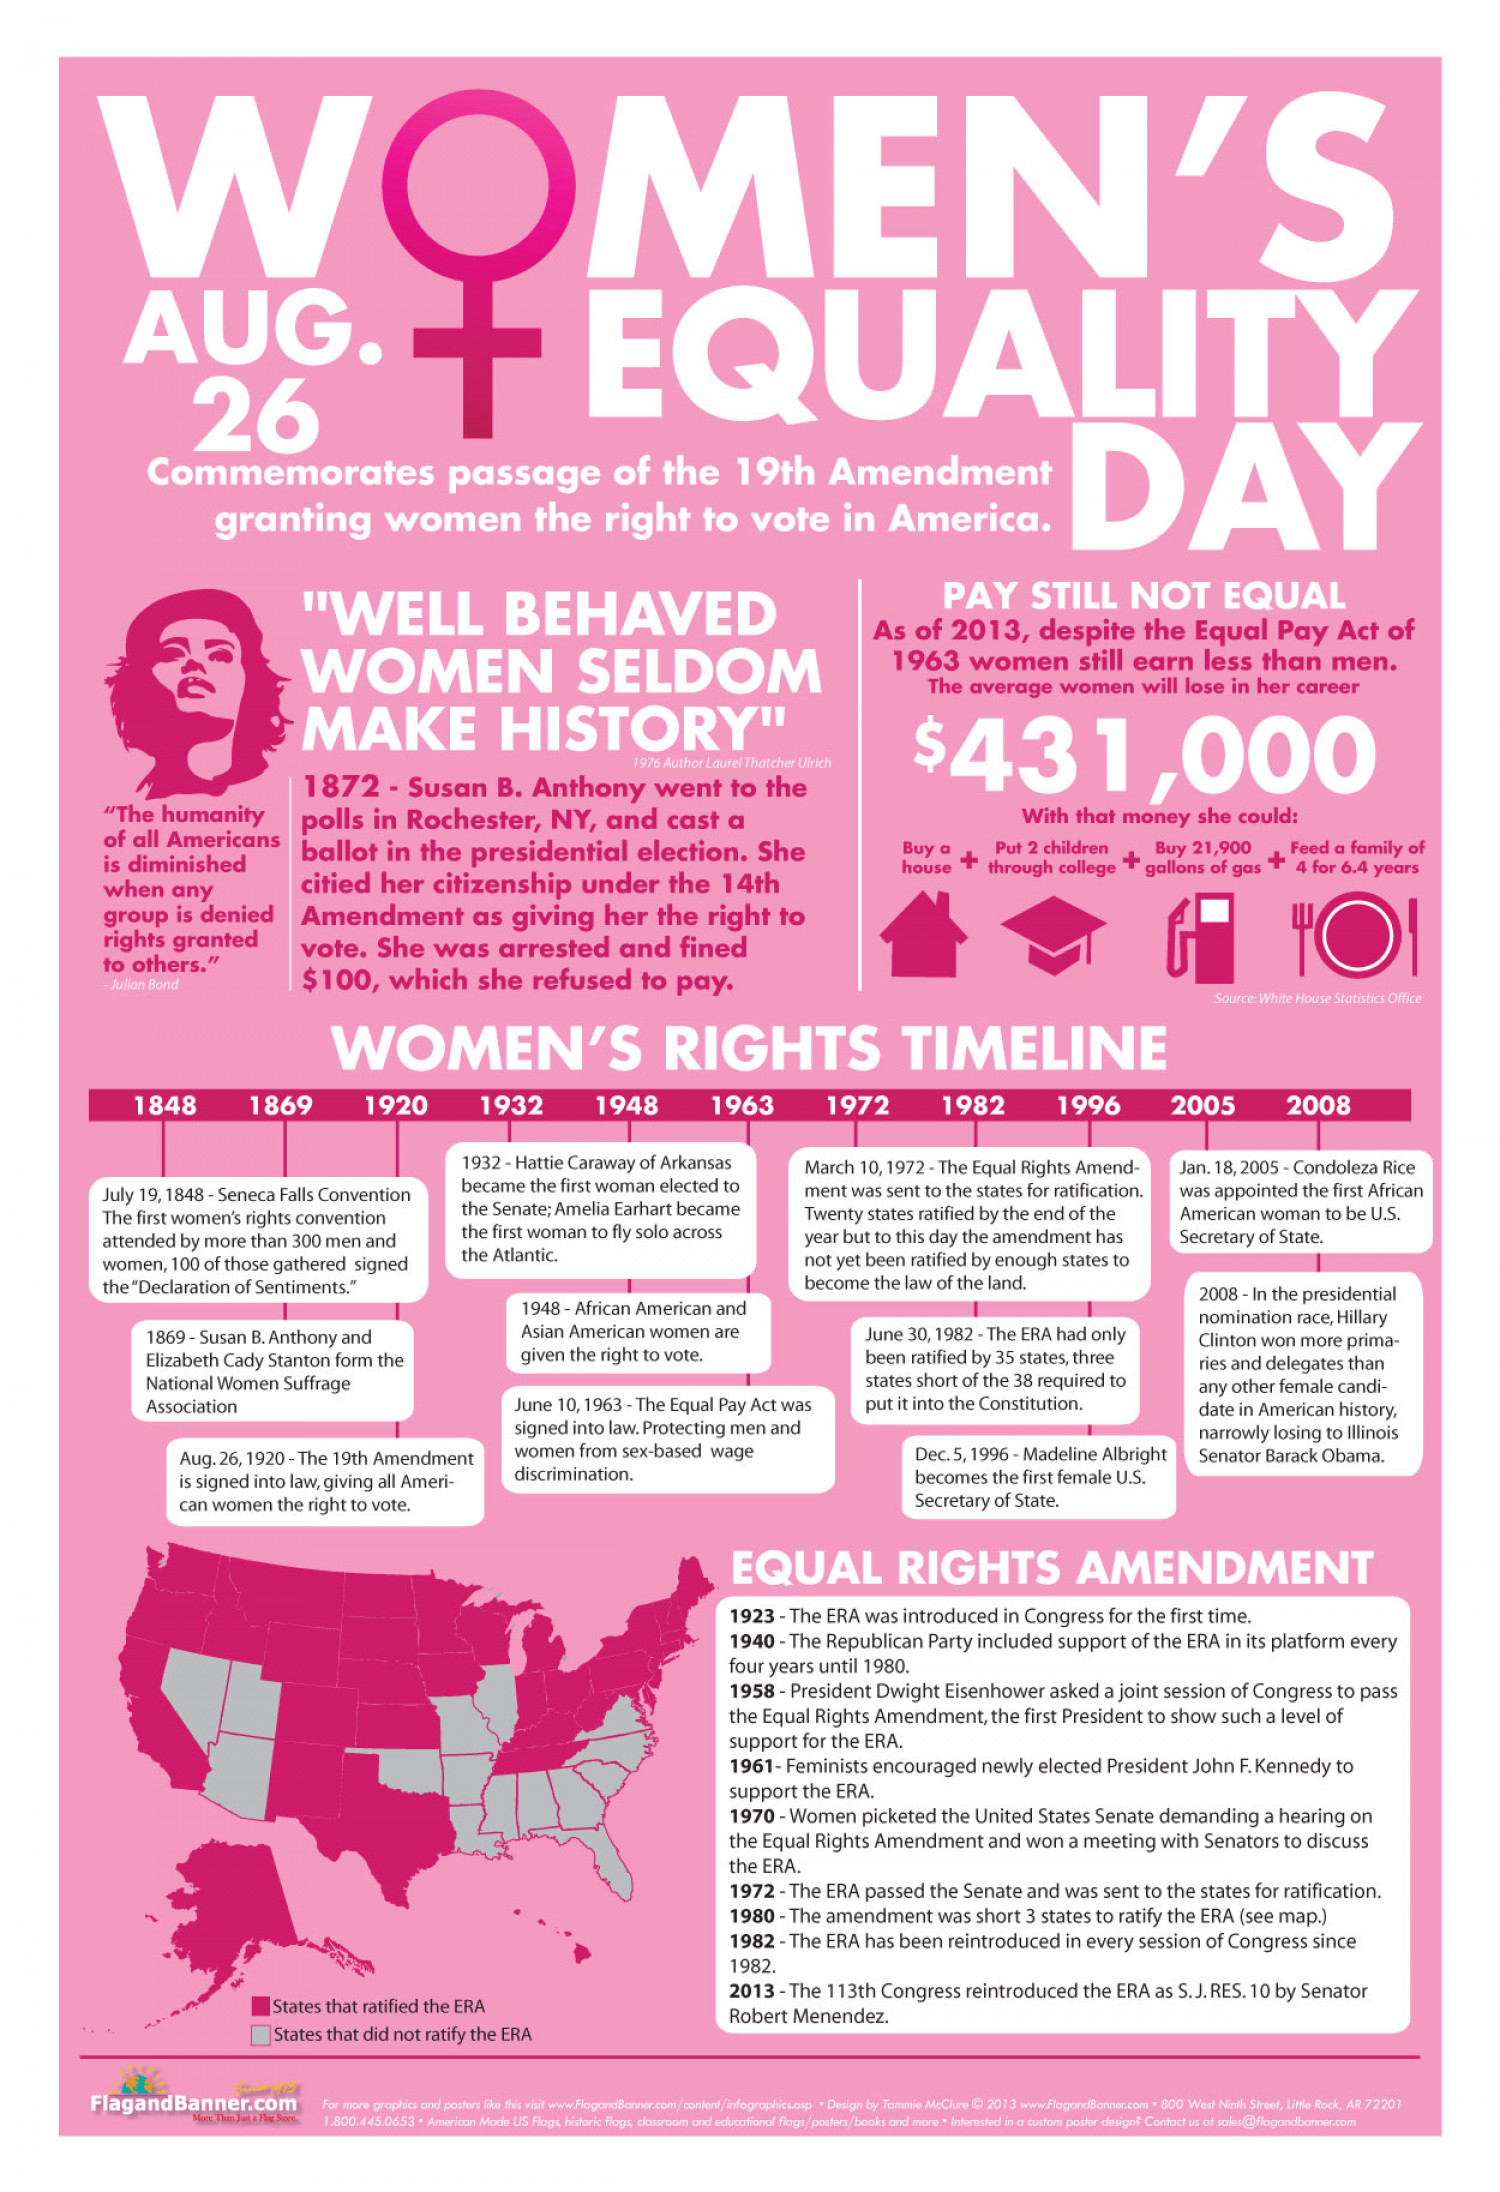 Women's Equality Day - August 26 Infographic